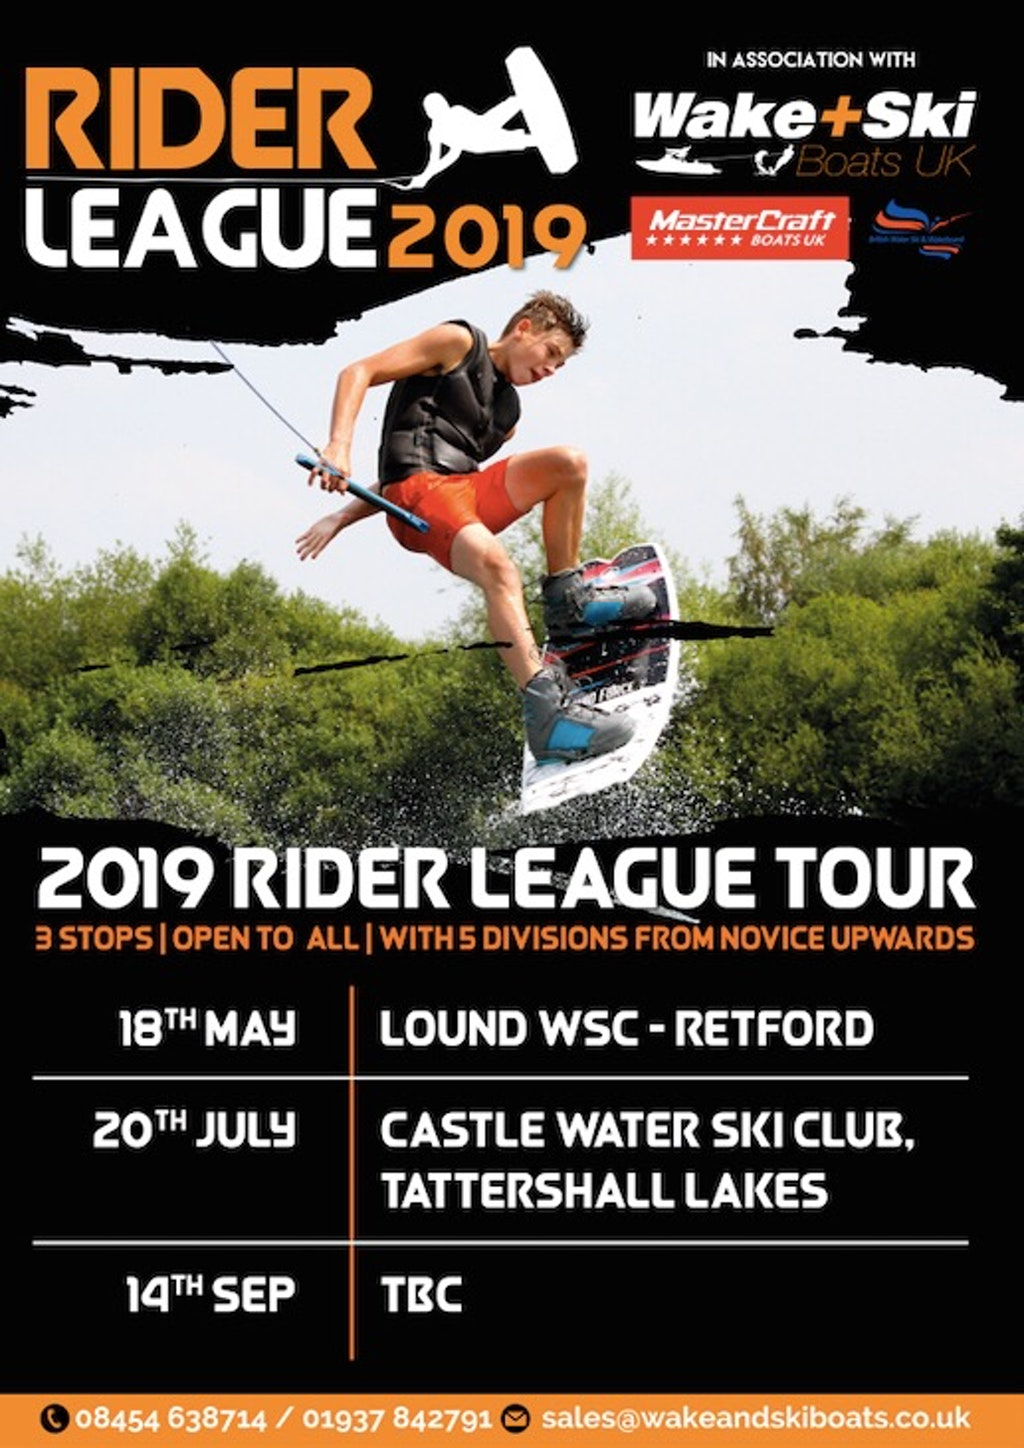 2019 Rider League Stop 3 - Calmwater Bay, Knaresborough